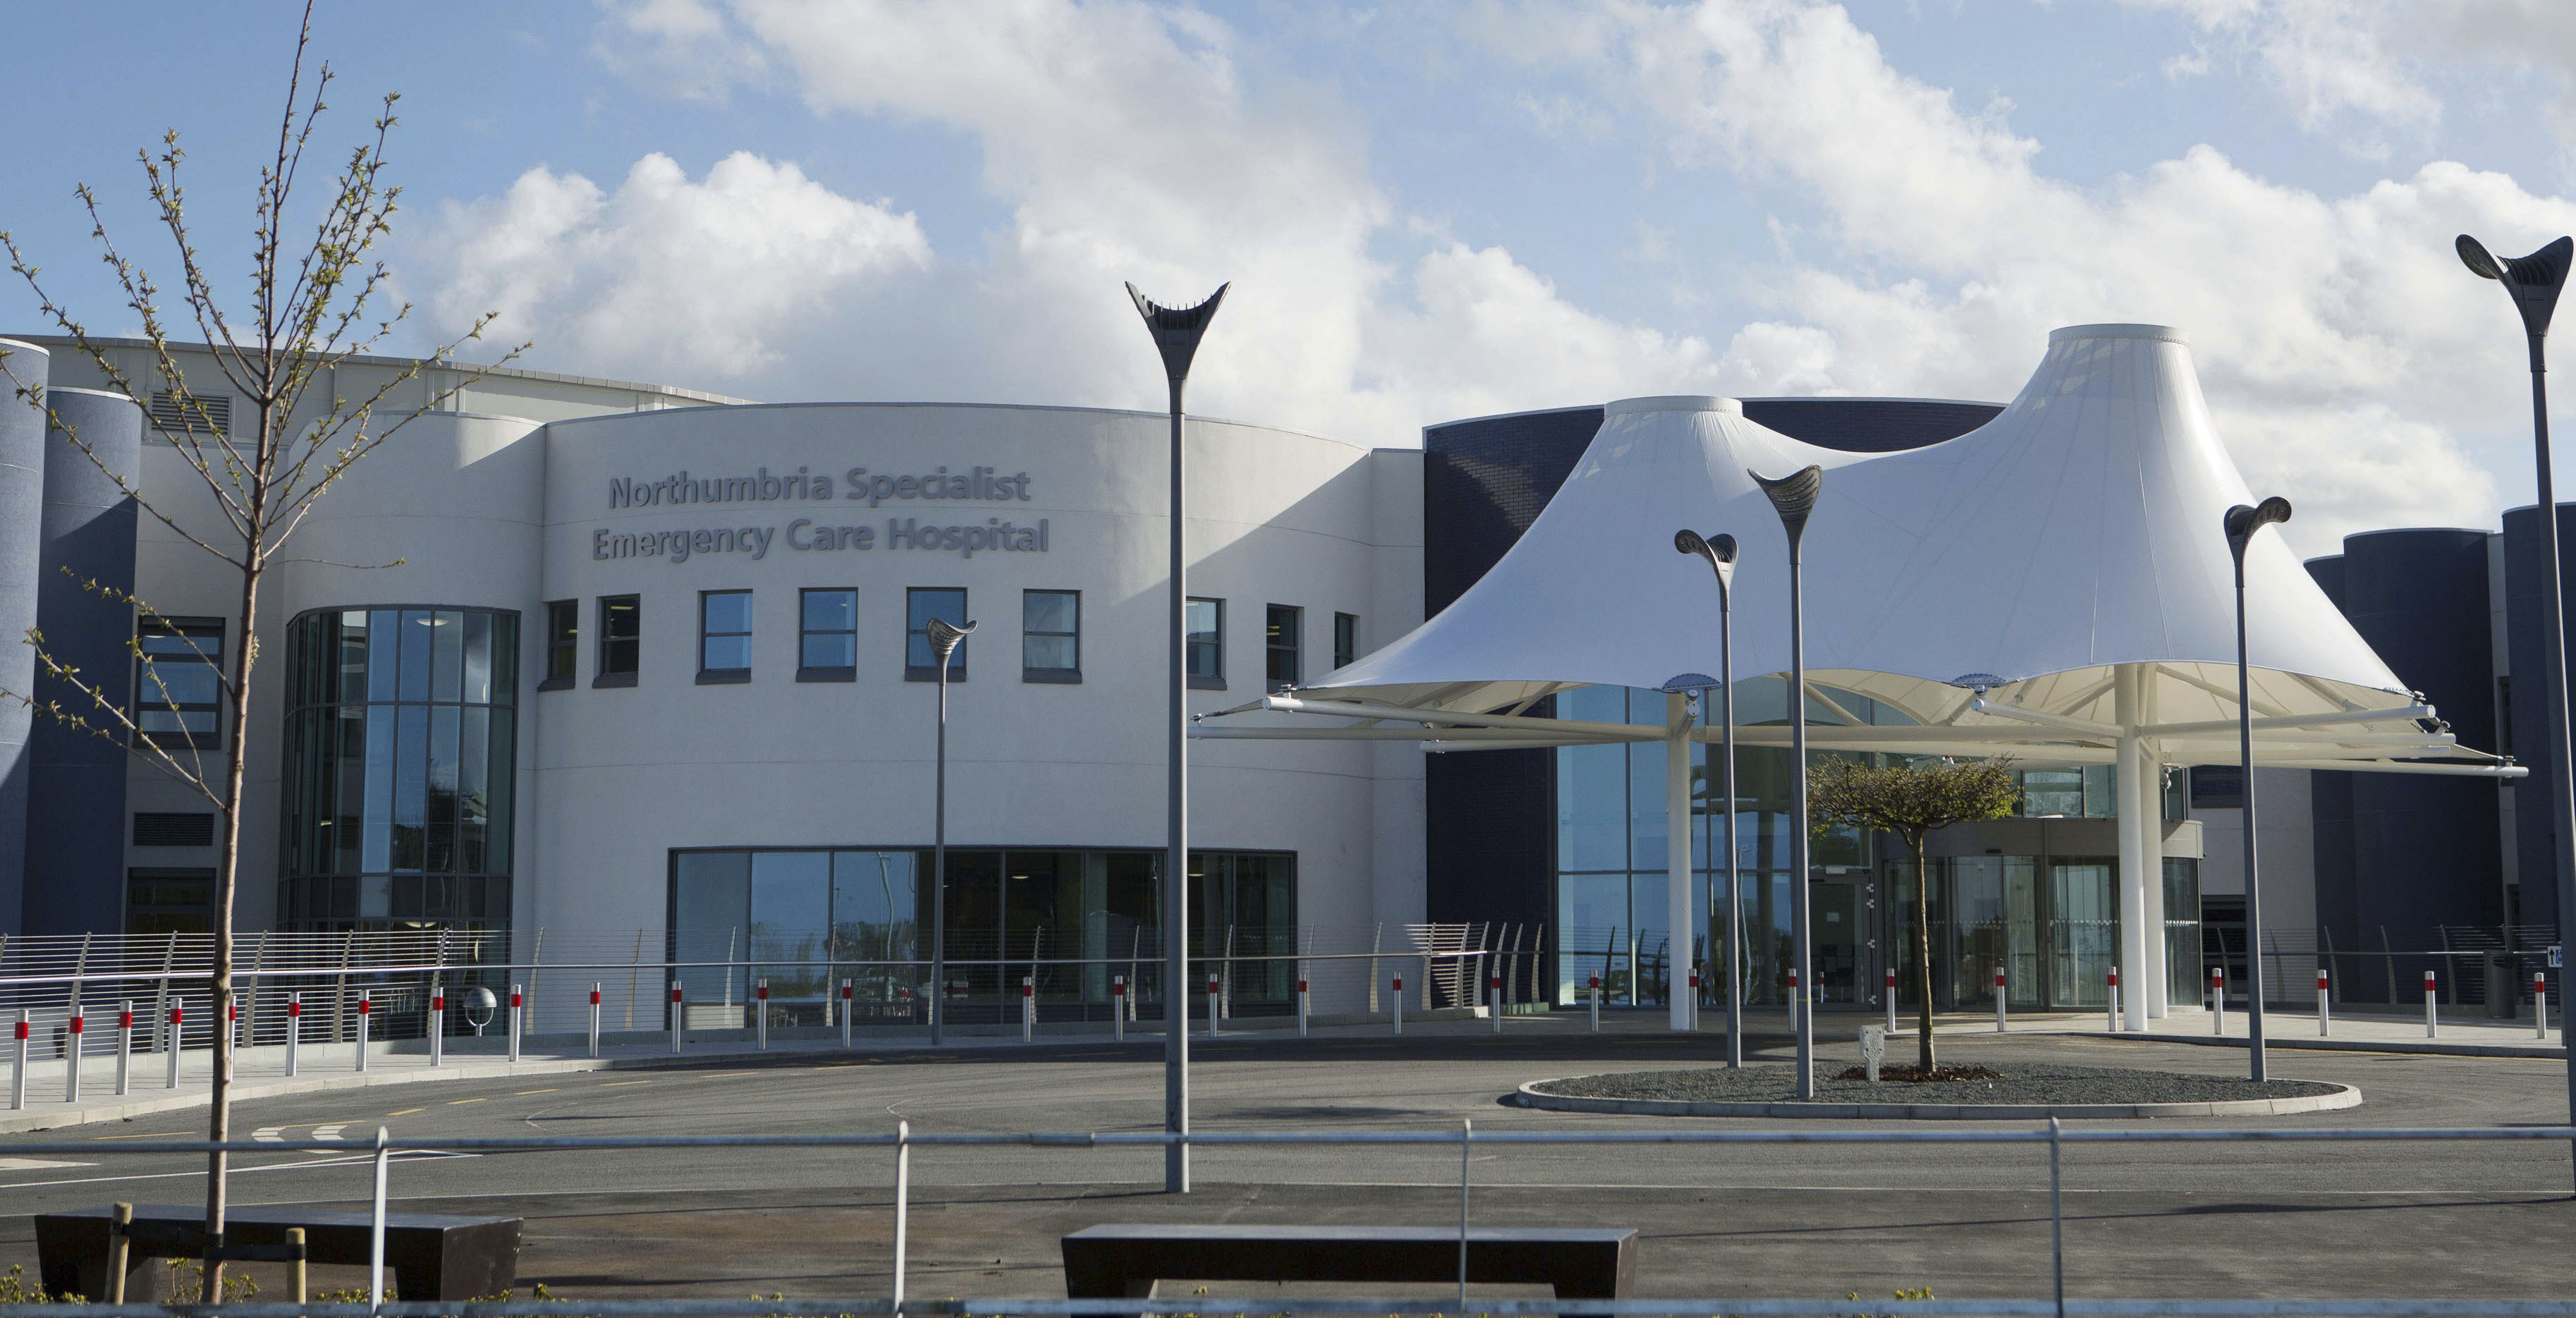 CEM secures new Northumbria specialist emergency care hospital